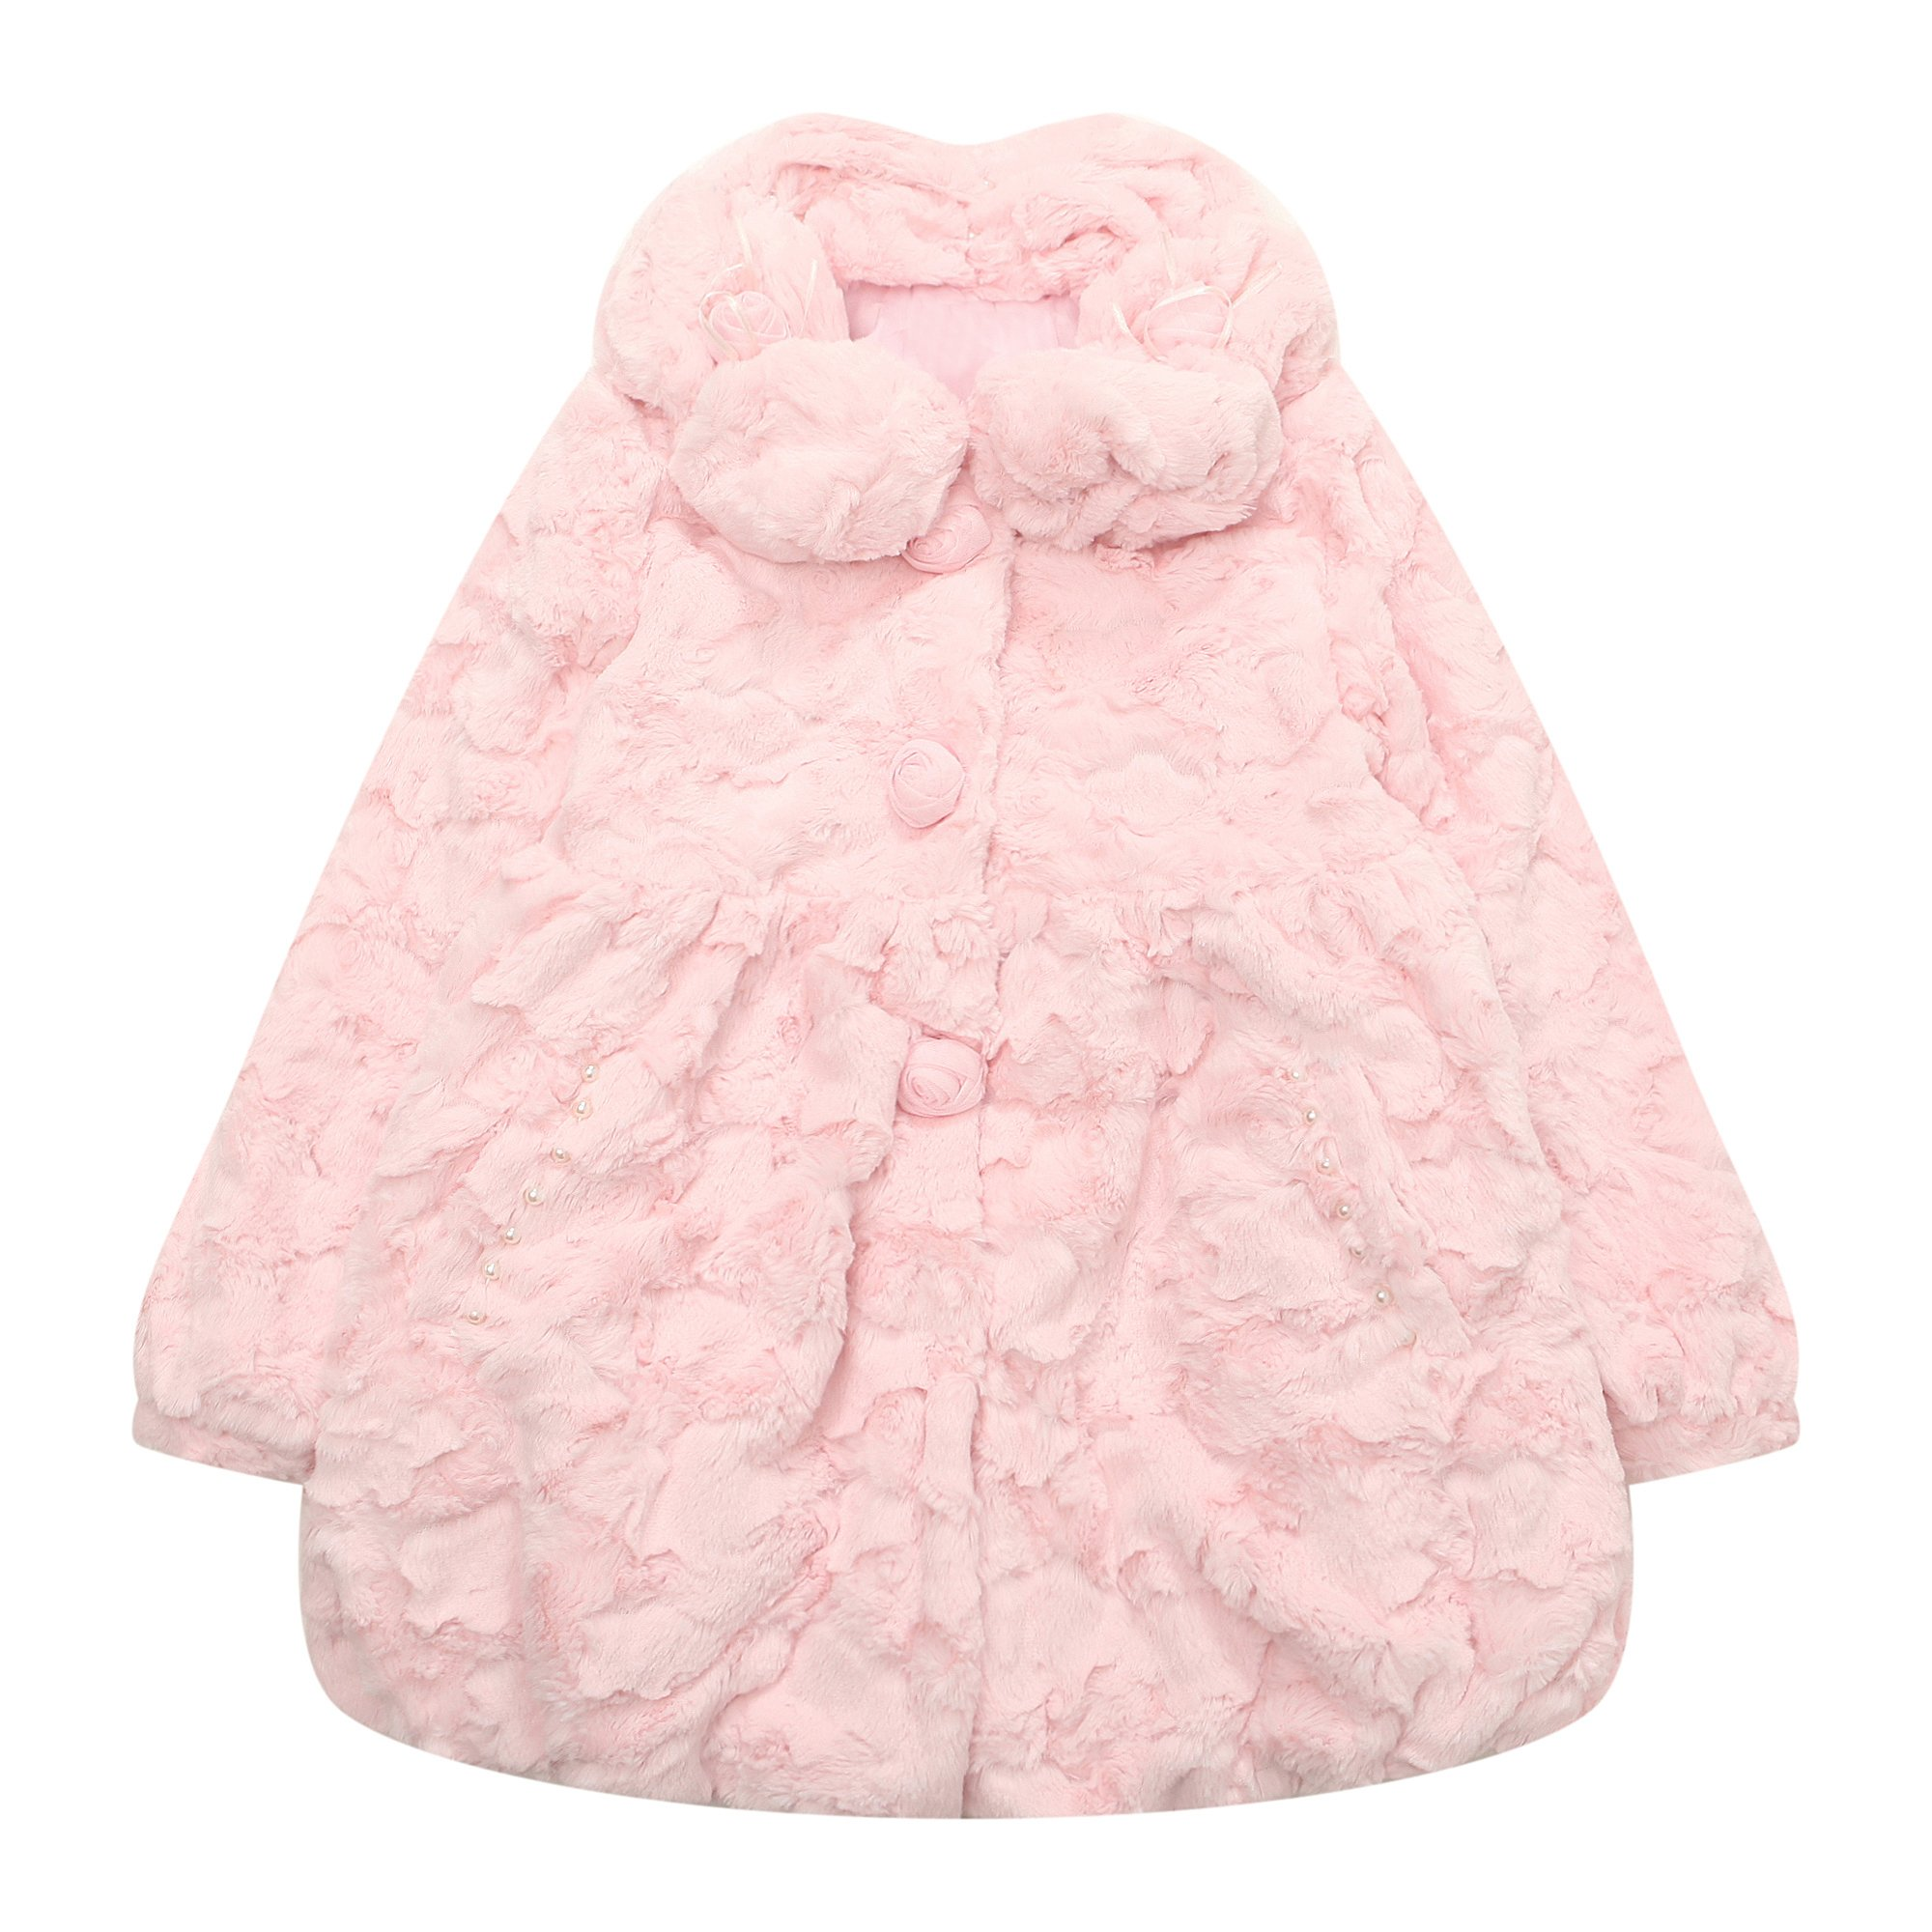 Richie House Big Girls' Lovely Coat with Short Fleece RH1472-8/9